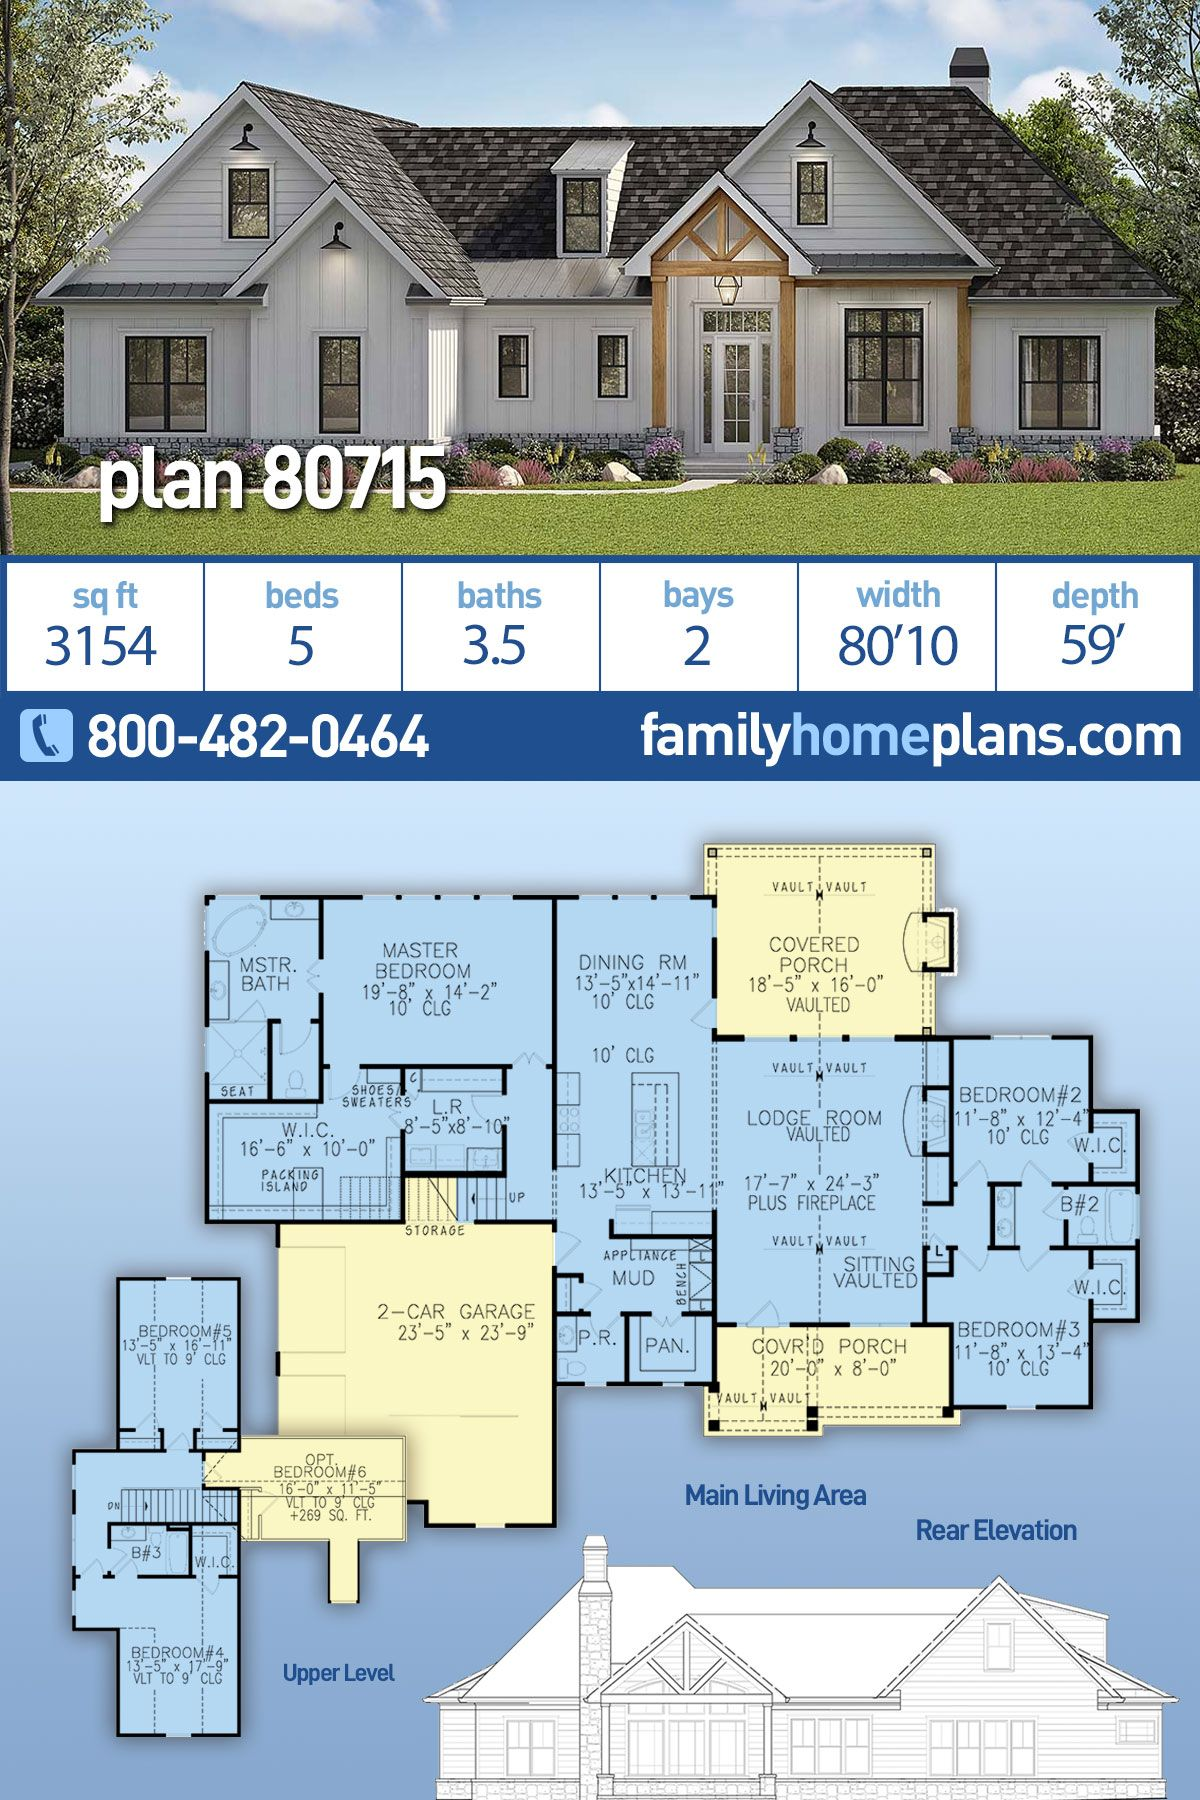 Southern Style House Plan 80715 With 5 Bed 4 Bath 2 Car Garage Multigenerational House Plans House Plans House Plans Farmhouse